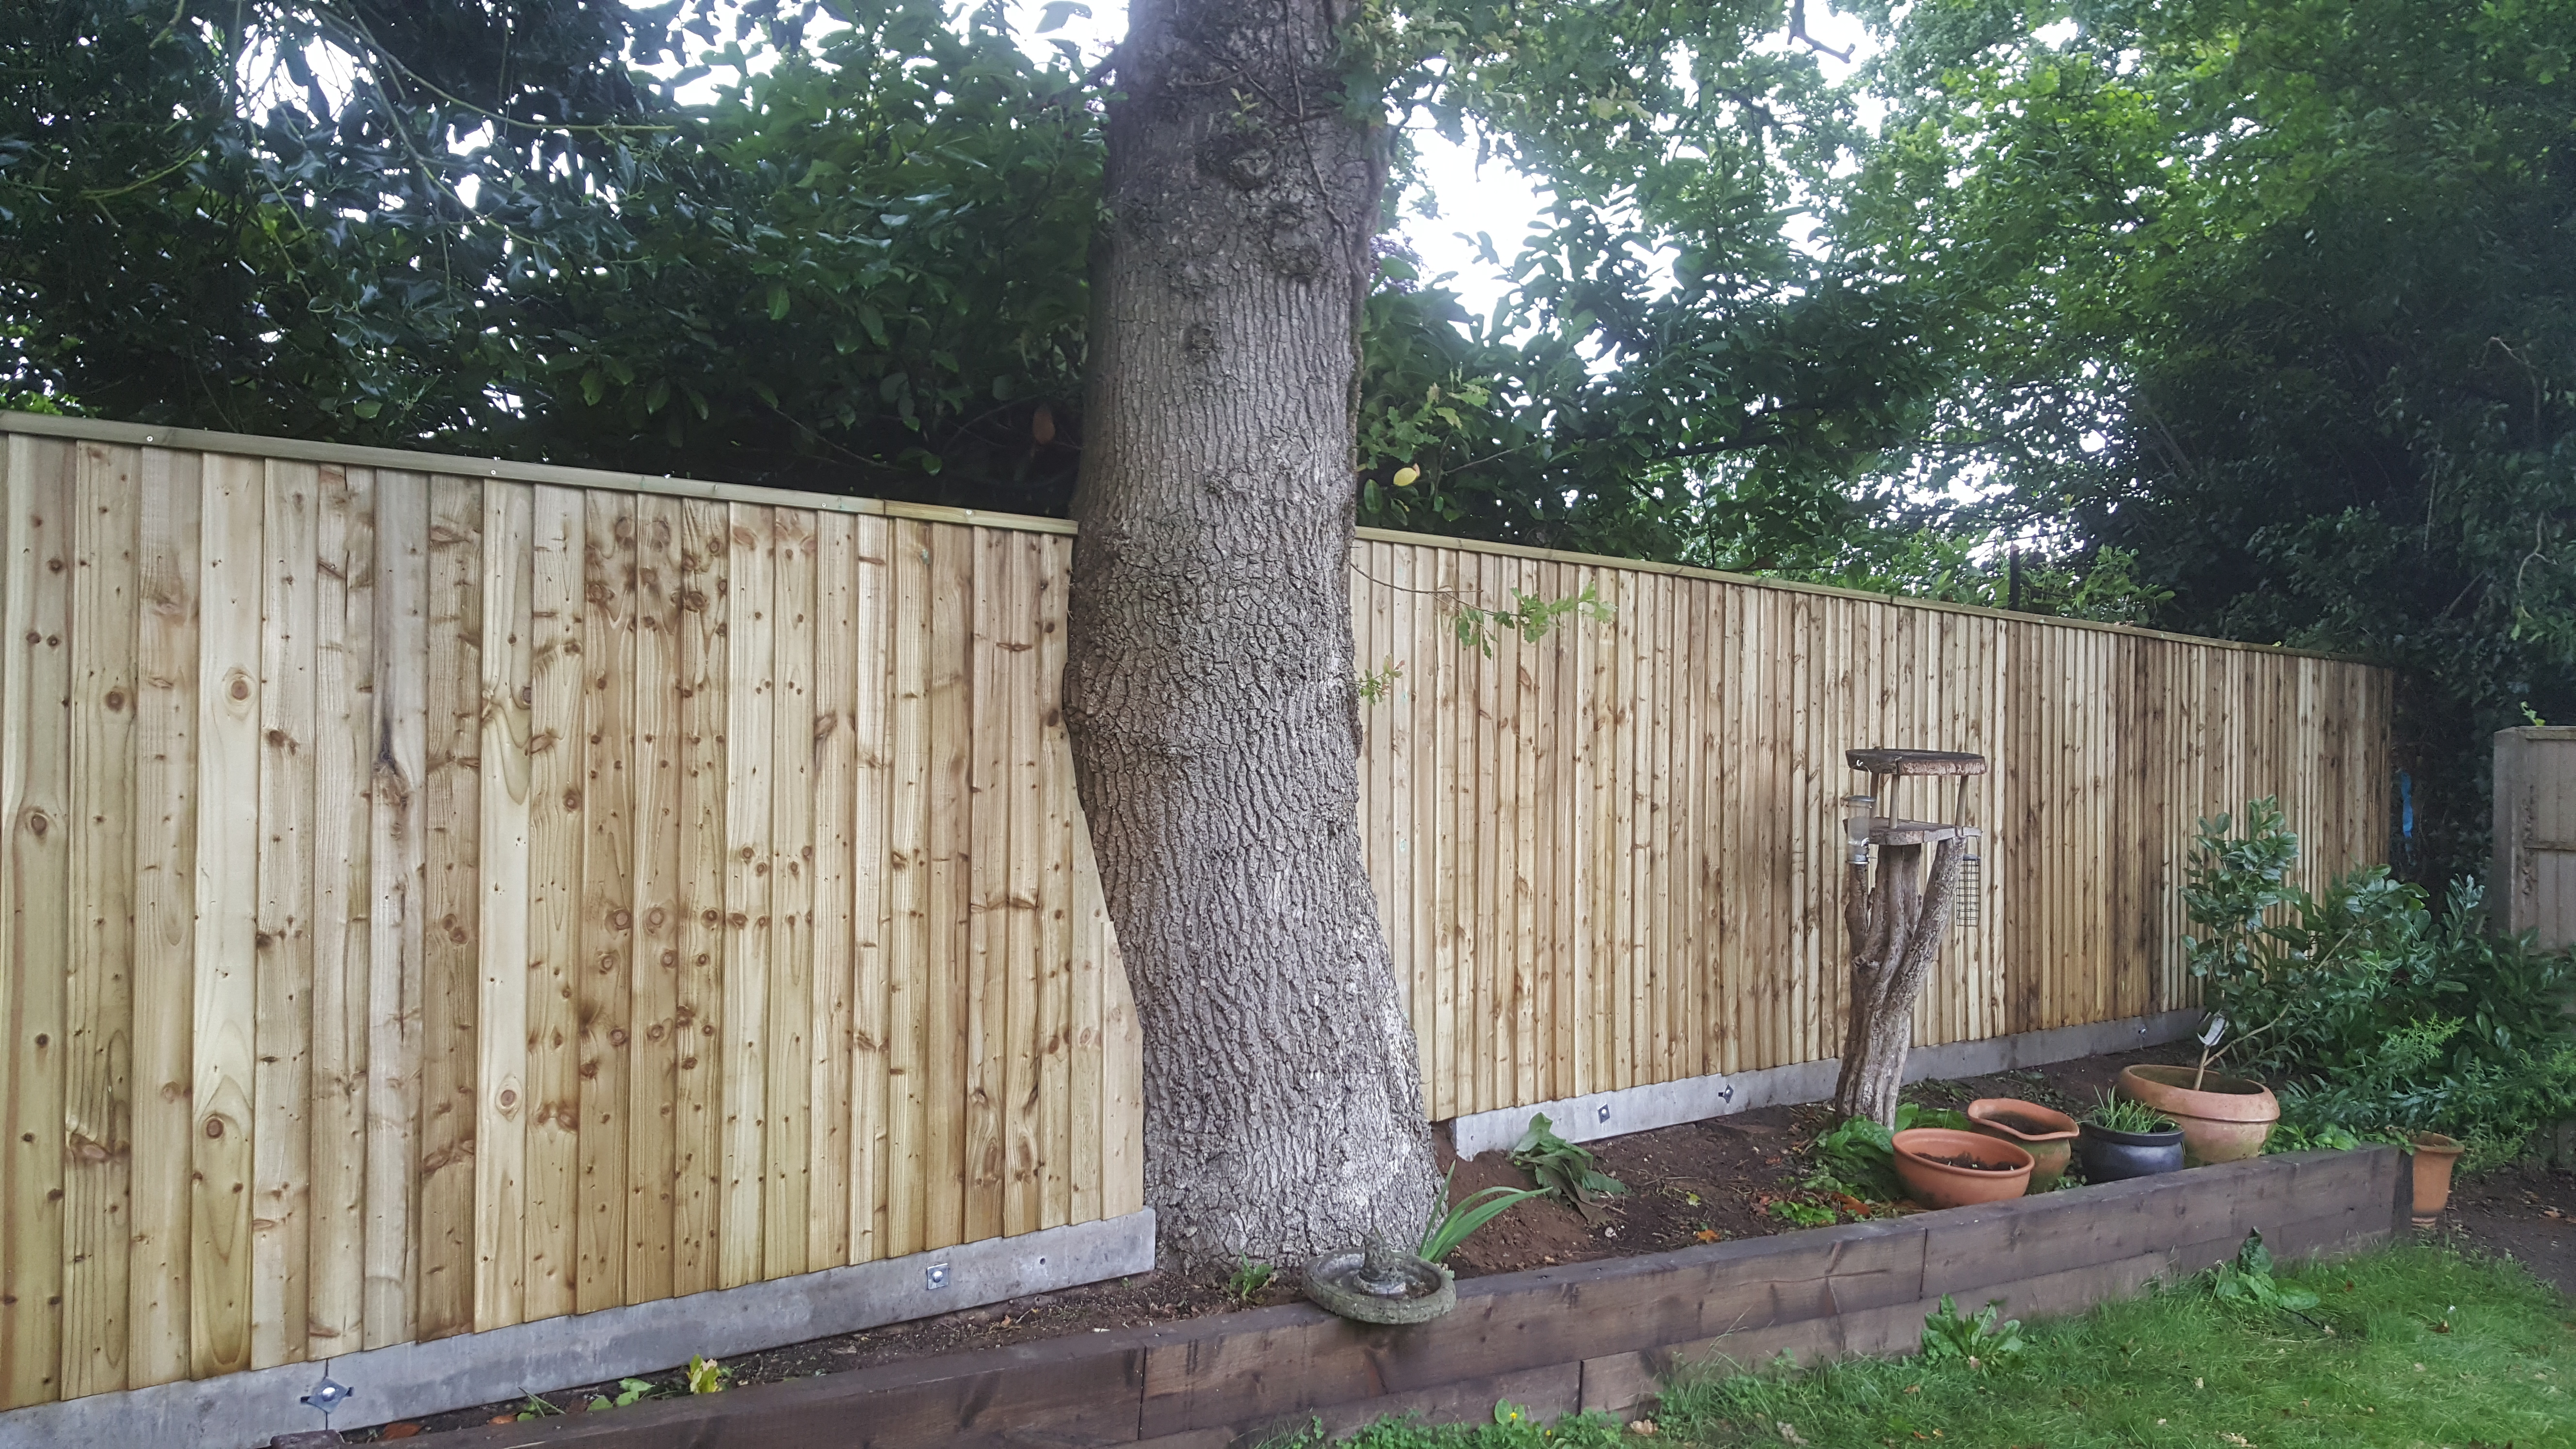 Closeboard Fencing Installed On Concrete Universal Posts